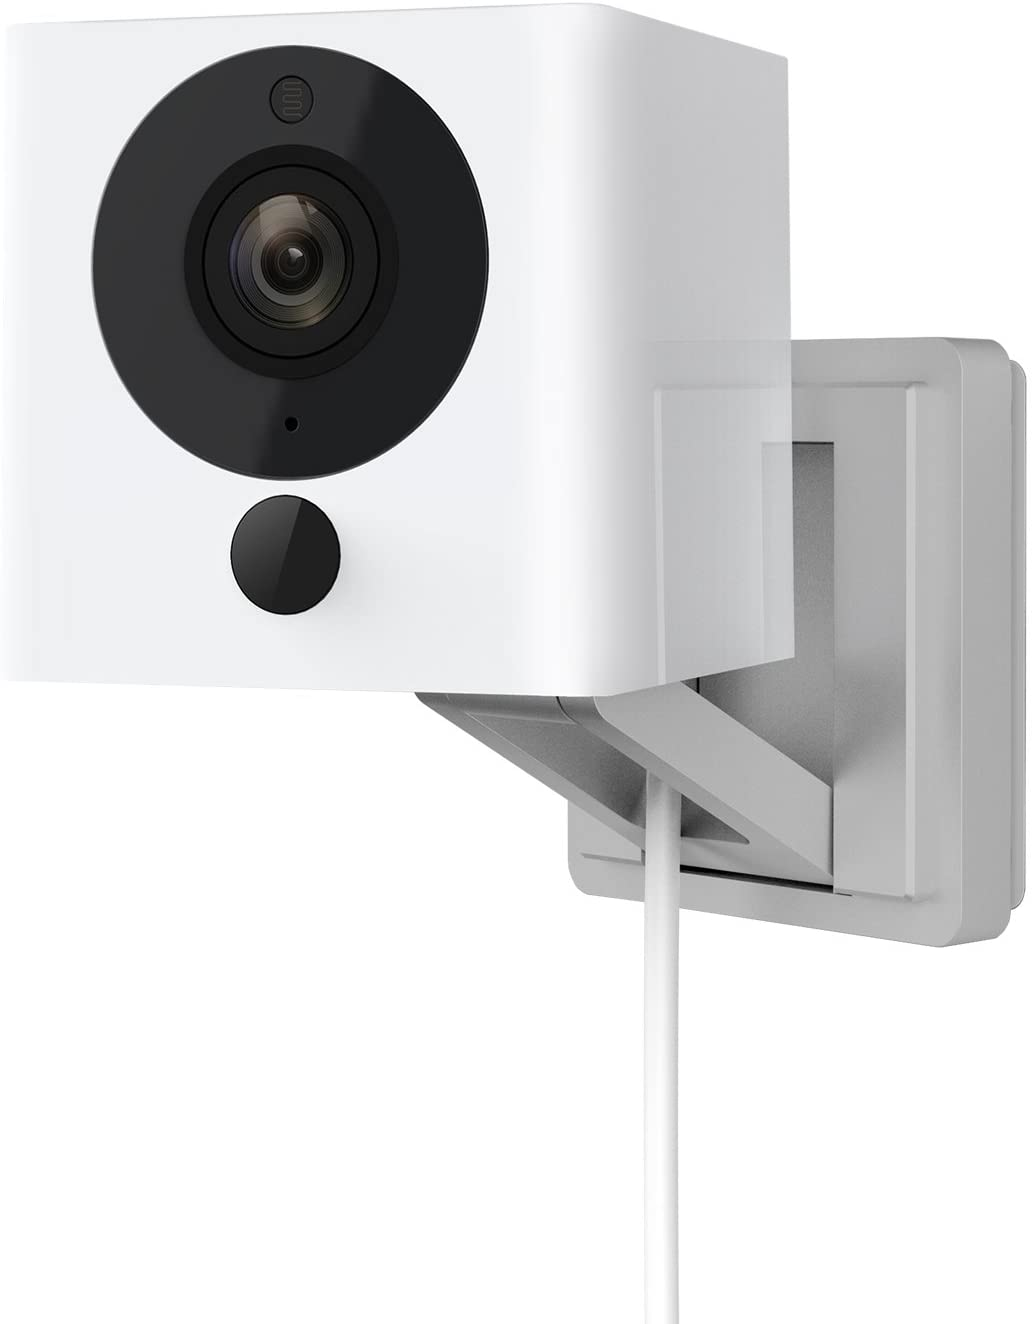 Best Home Security Camera Systems - Wyze Wired Cam